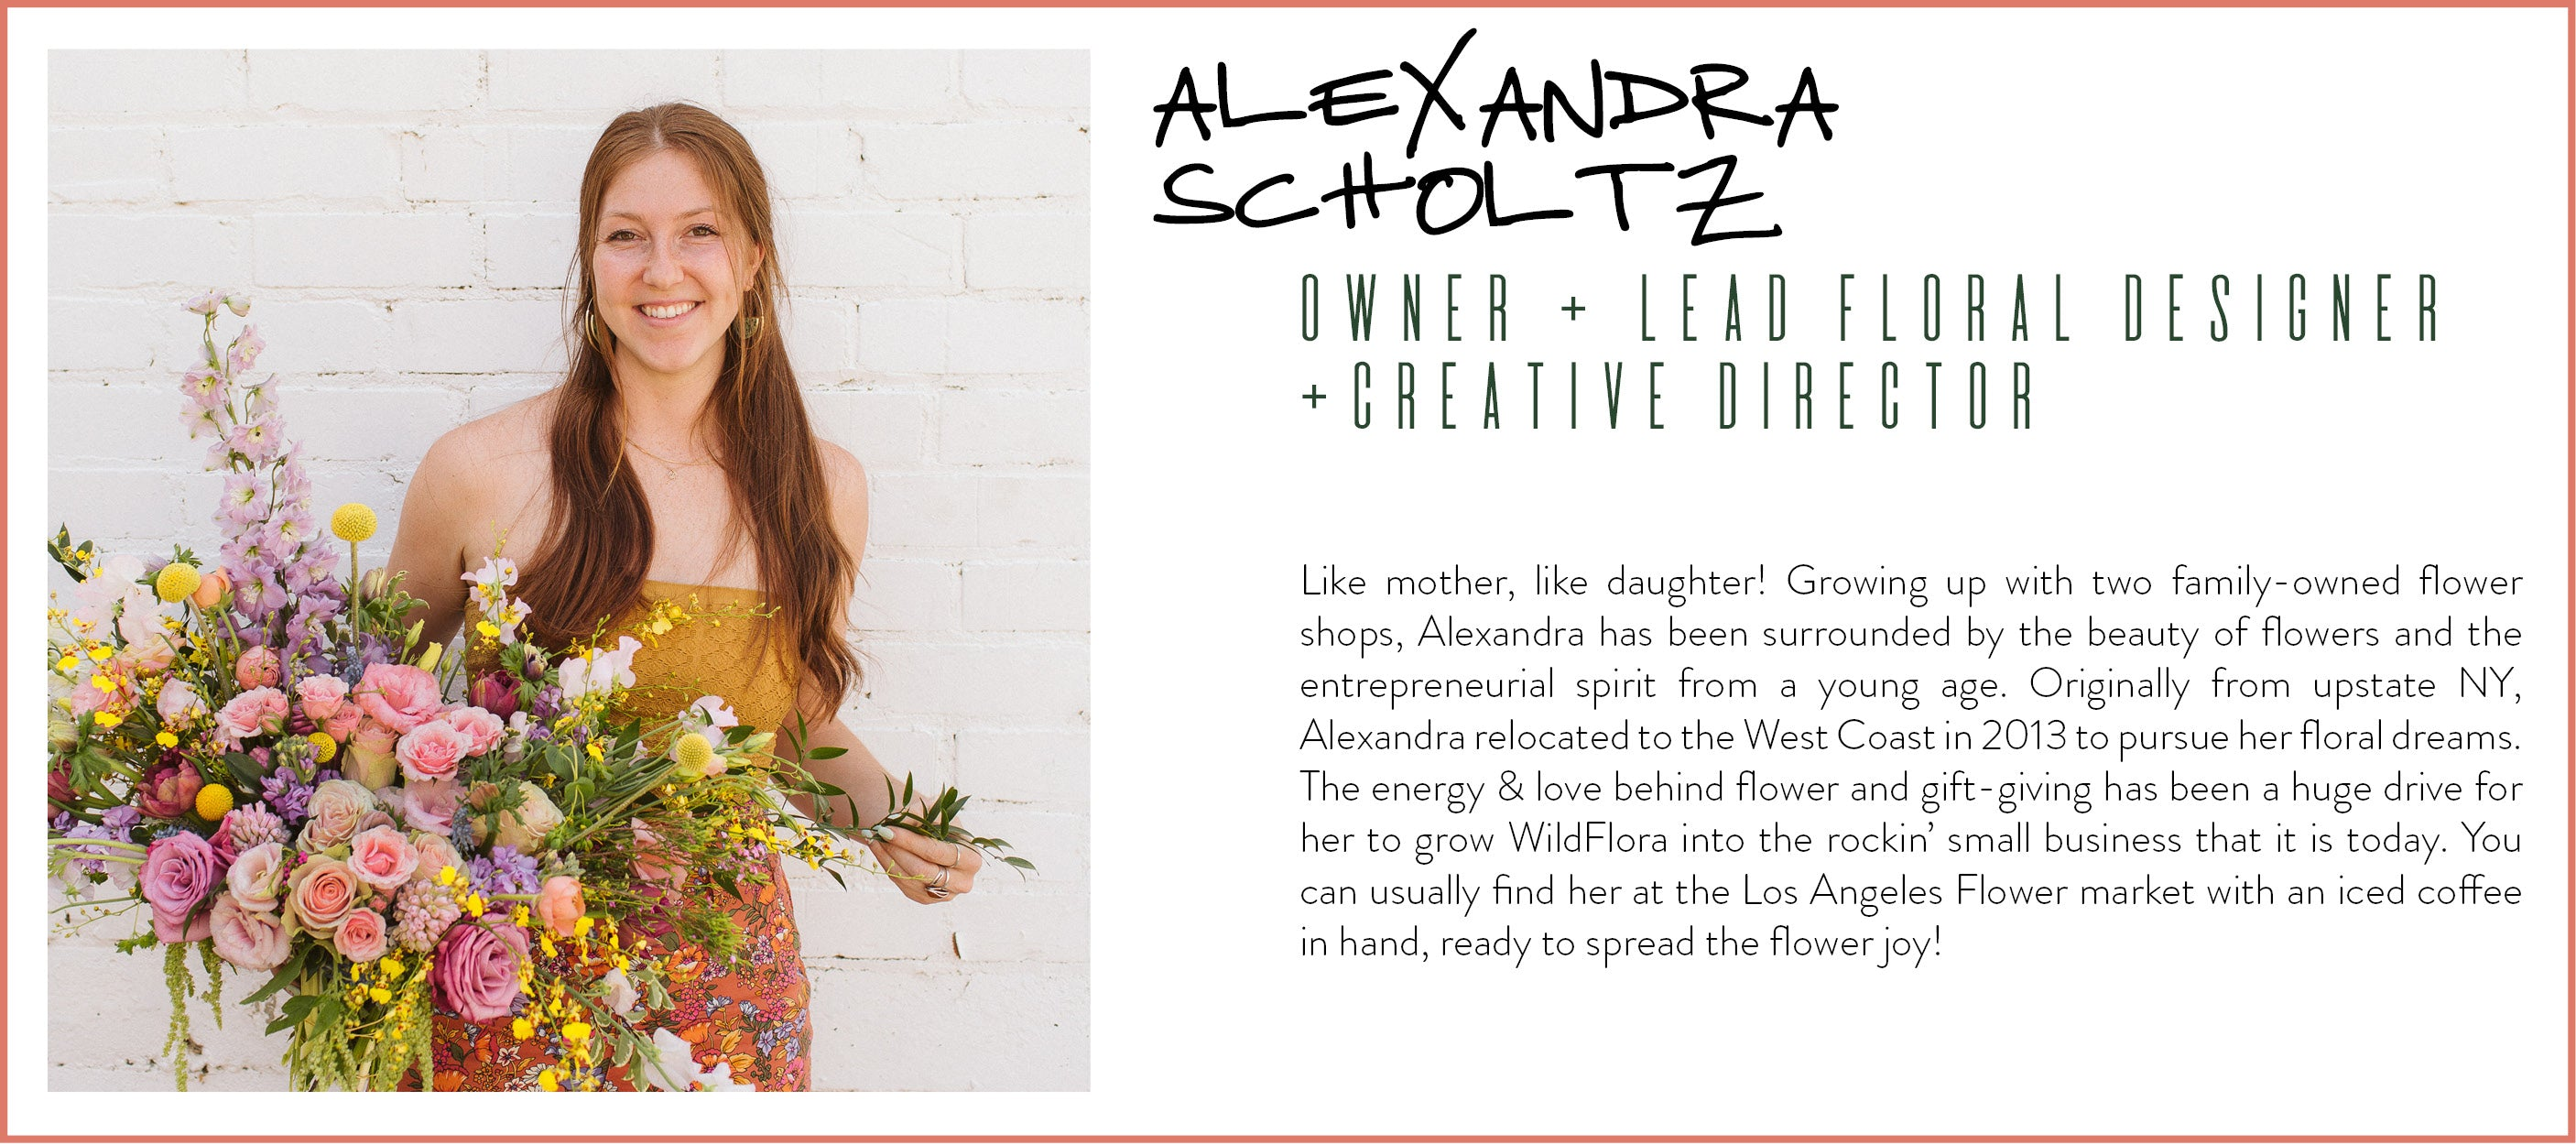 alexandra scholtz owner wildflora florist lead floral designer creative director woman-owned business small